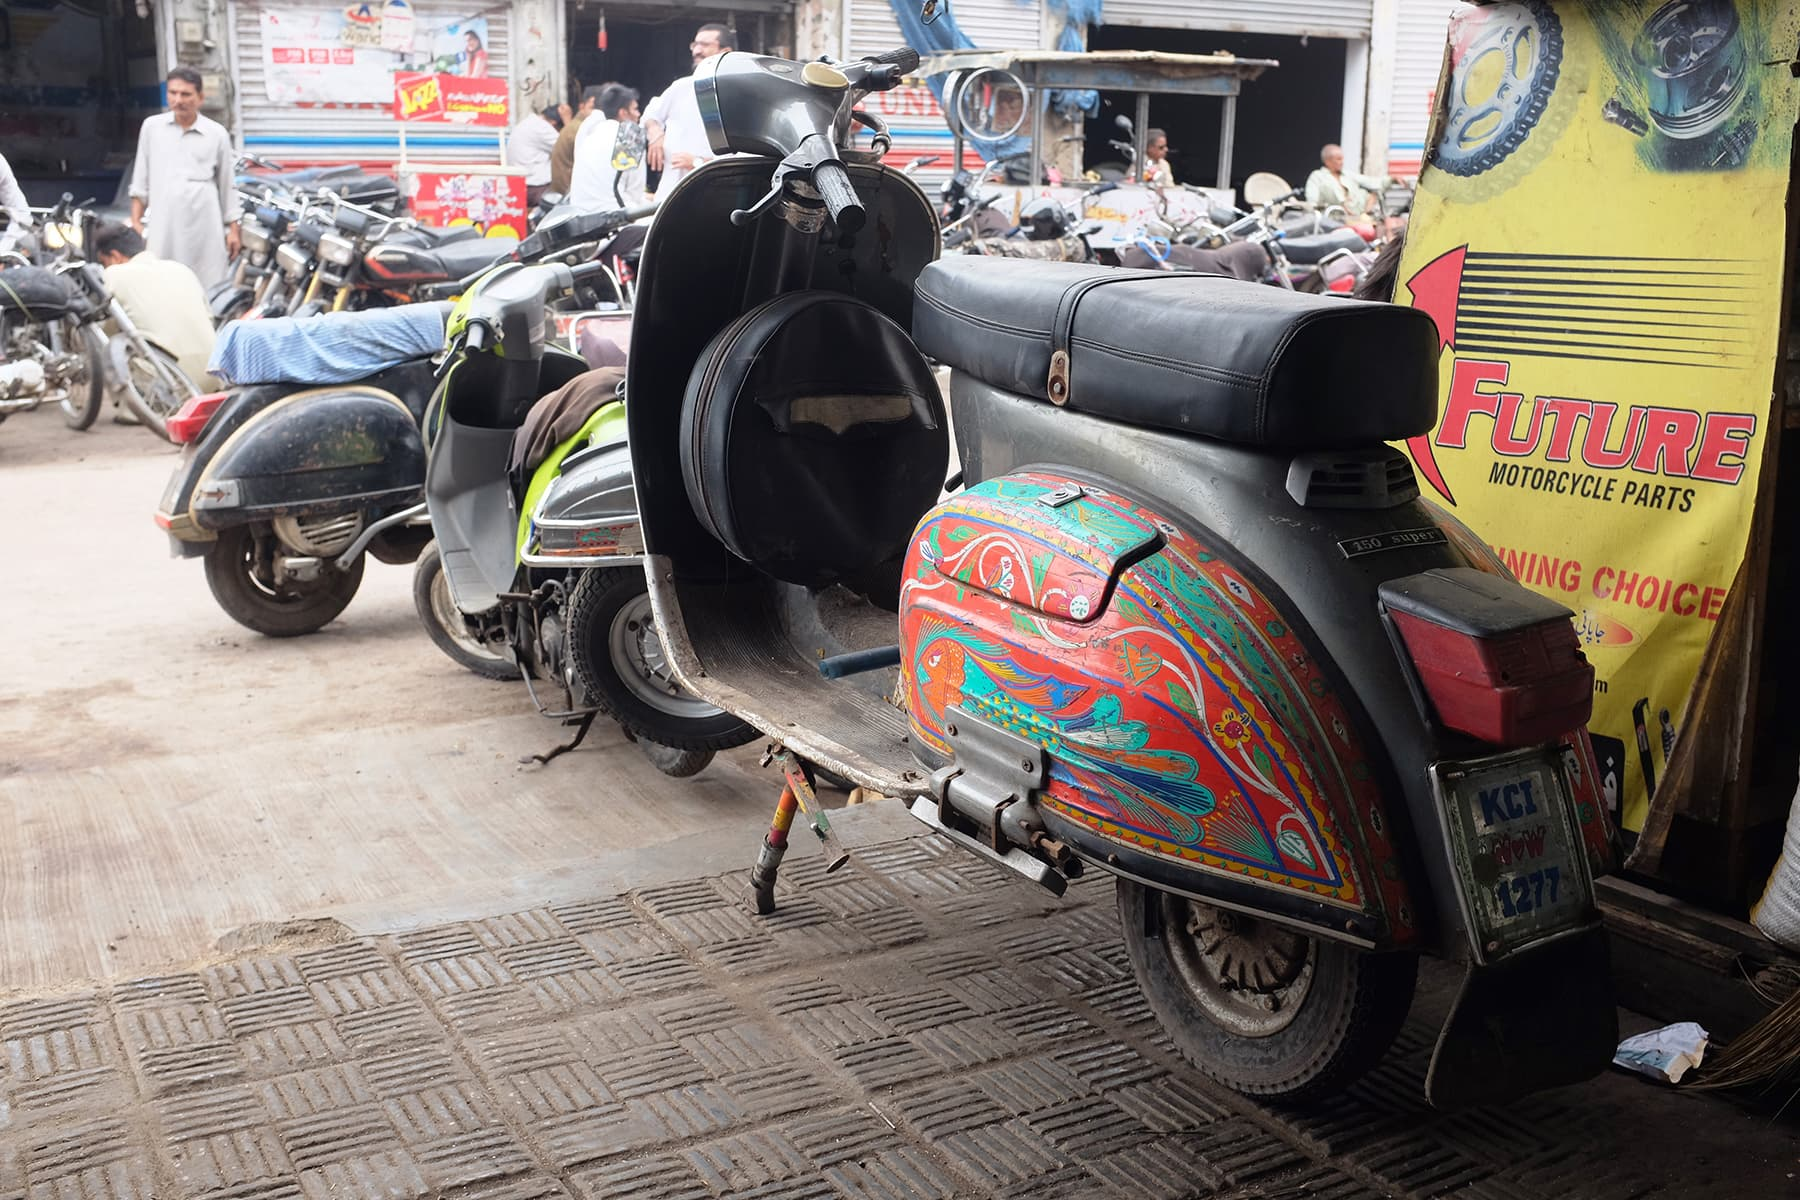 A Vespa with truck art at Abdullah's shworoom.